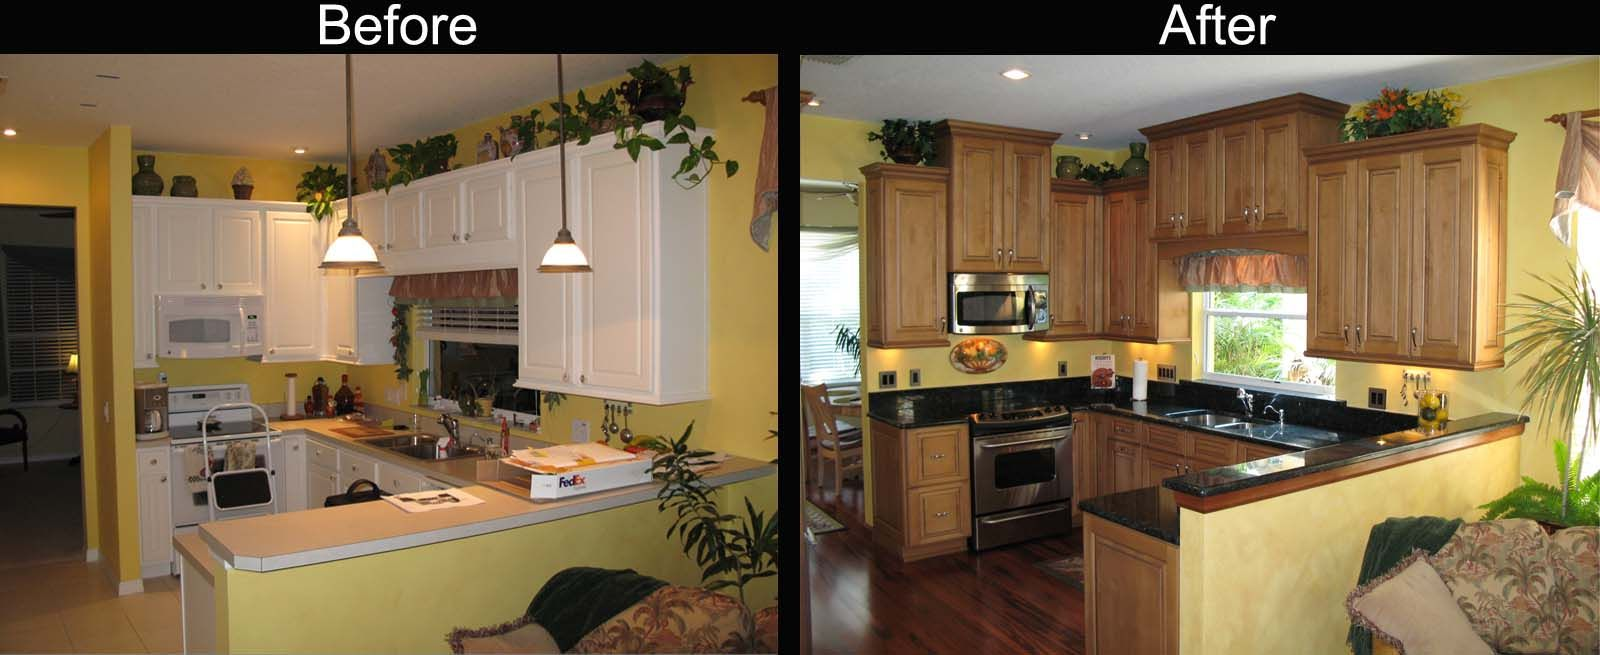 Home Renovation Ideas Before And After Fascinating Painted Cabinets Before And After Ideas For Your Kitchen Inspiration